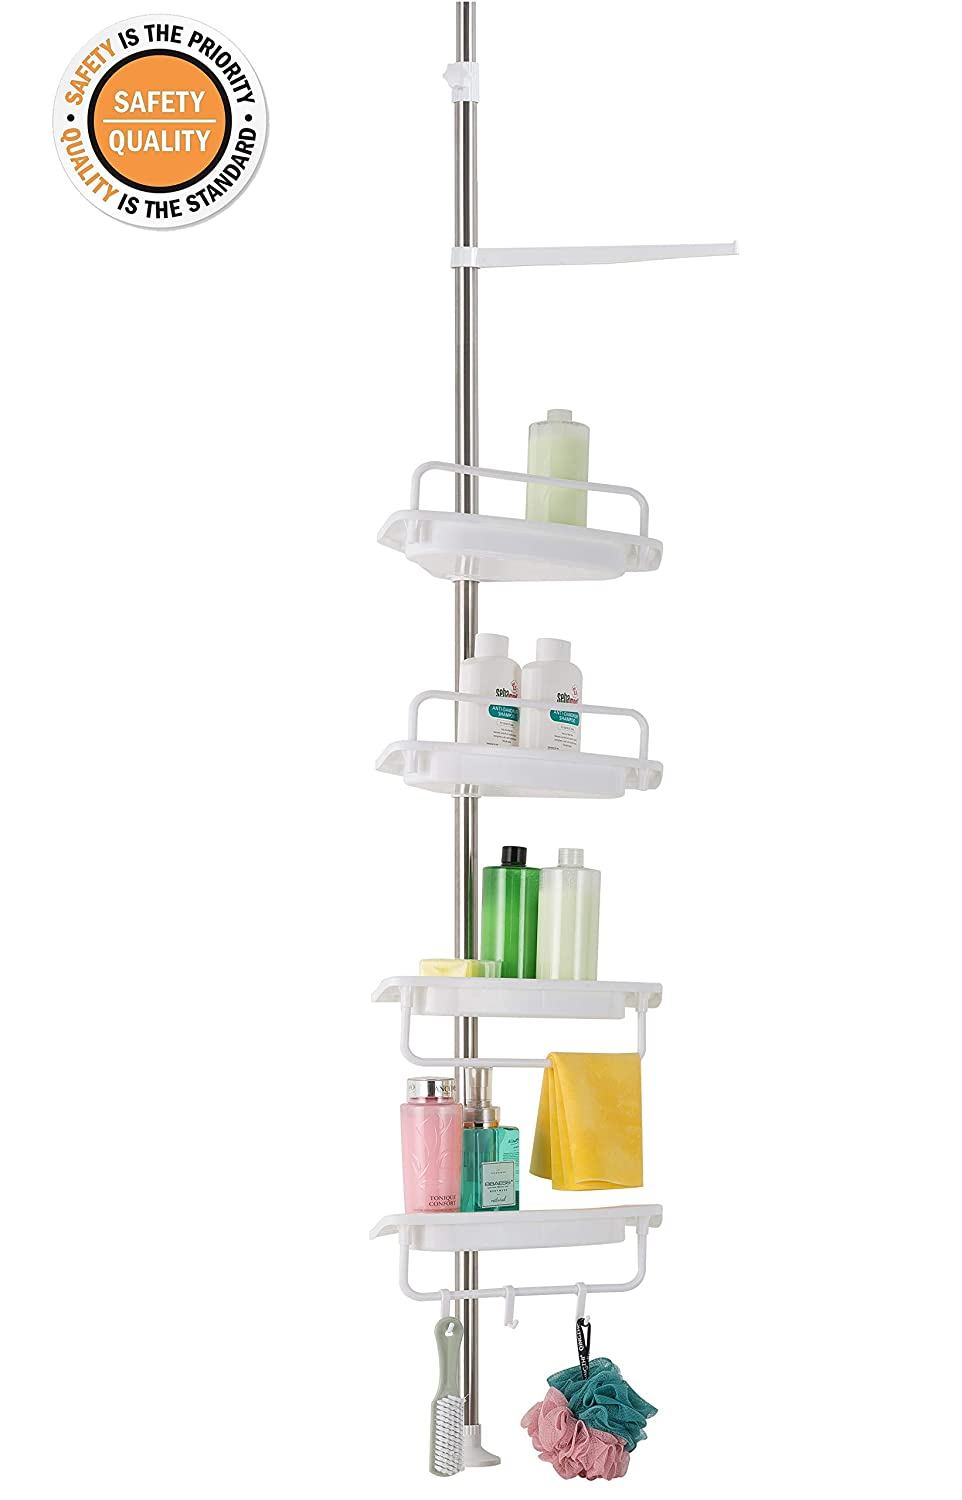 ALLZONE Constant Tension Corner Shower Caddy, Stainless Steel Pole, Rustproof, Strong and Sturdy, White 76020